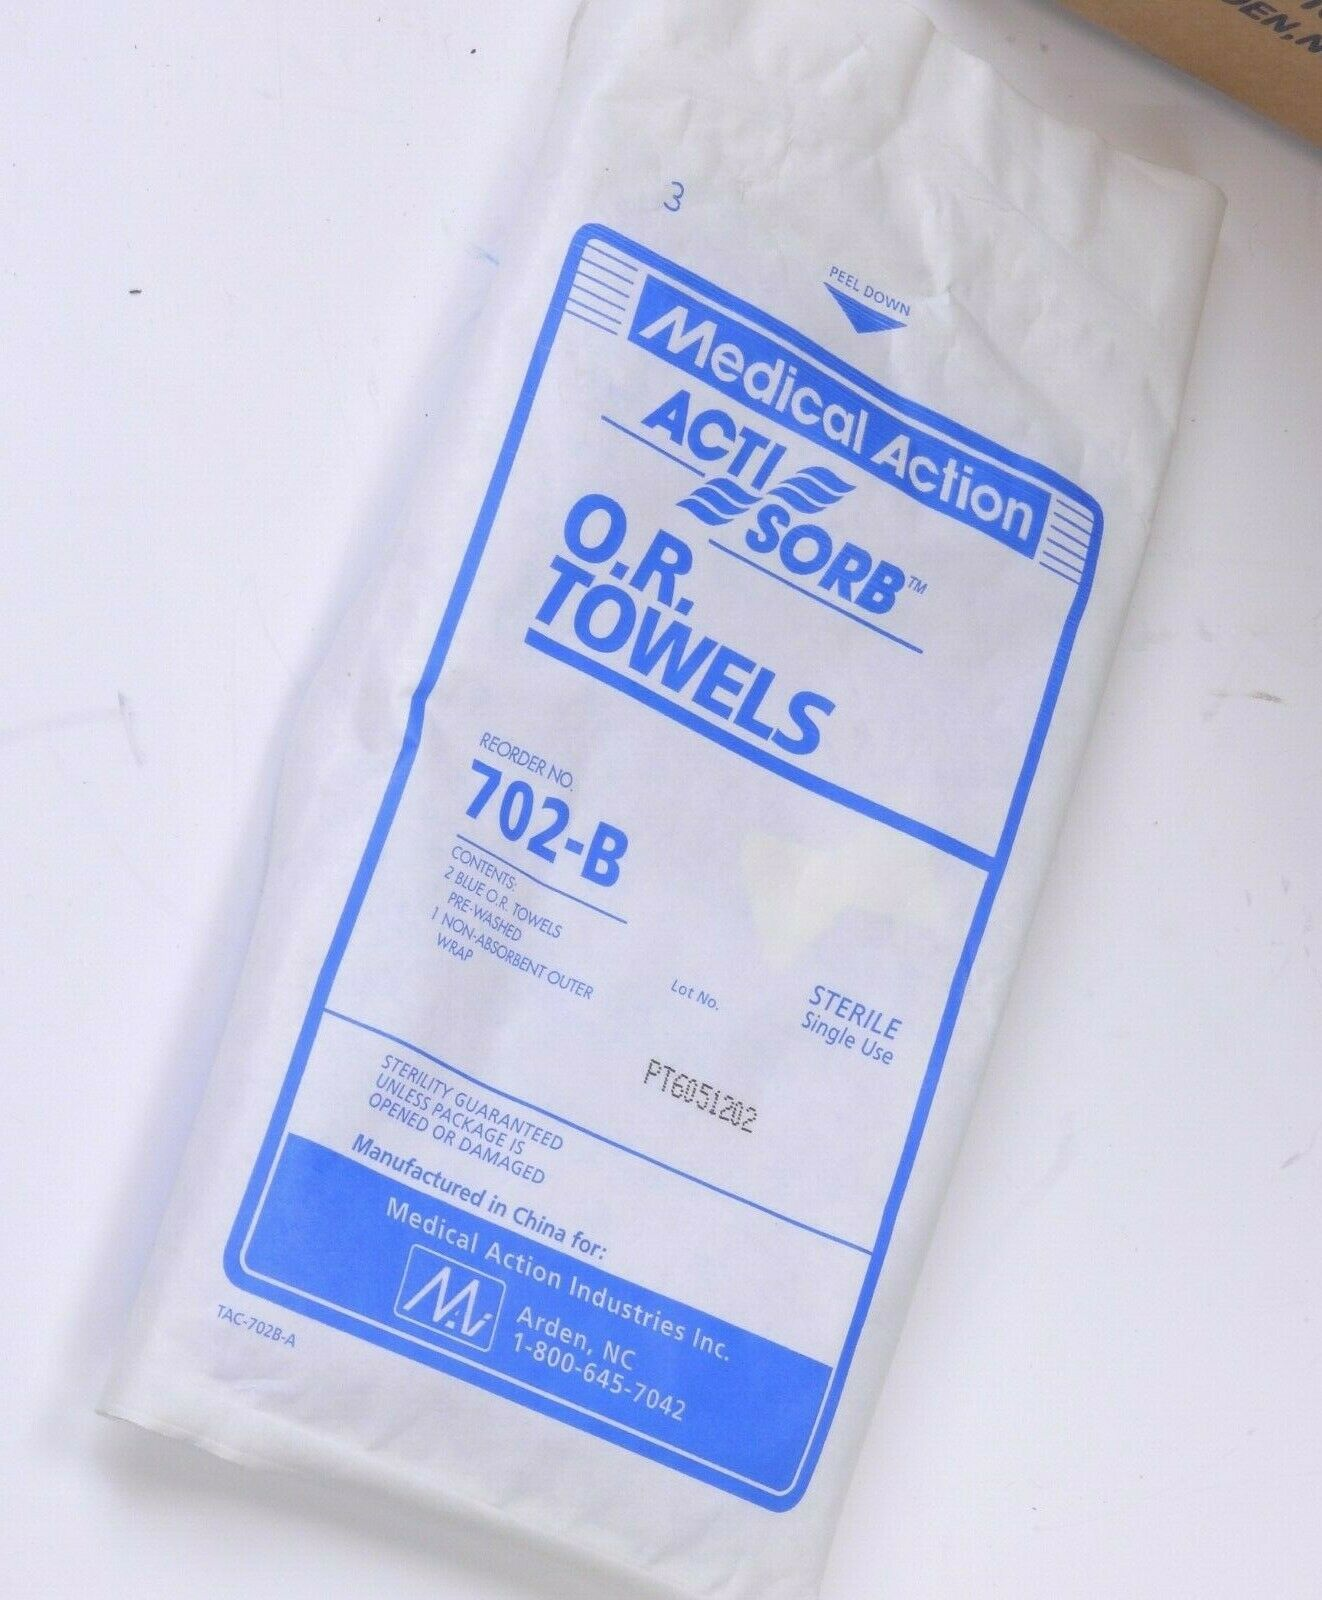 Box of 46 Medical Action 702-B